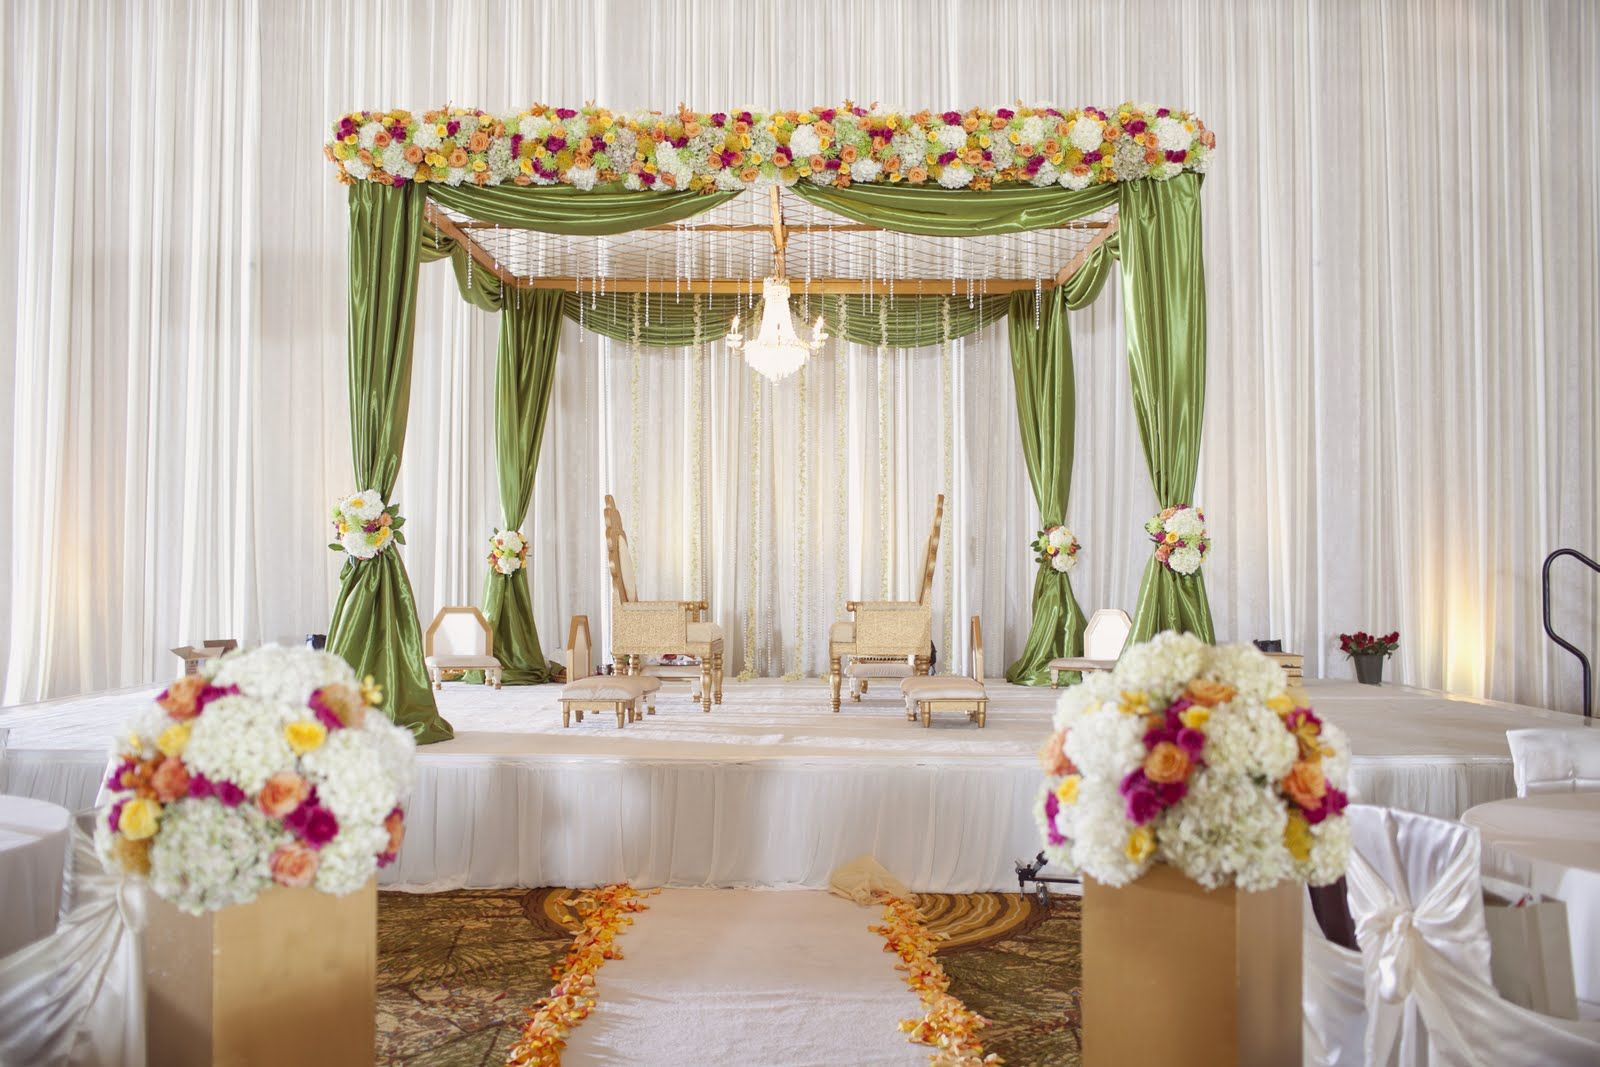 Indian Wedding Mandap Decoration With Flowers Ideas Pictures Latest Fashion Trends In India